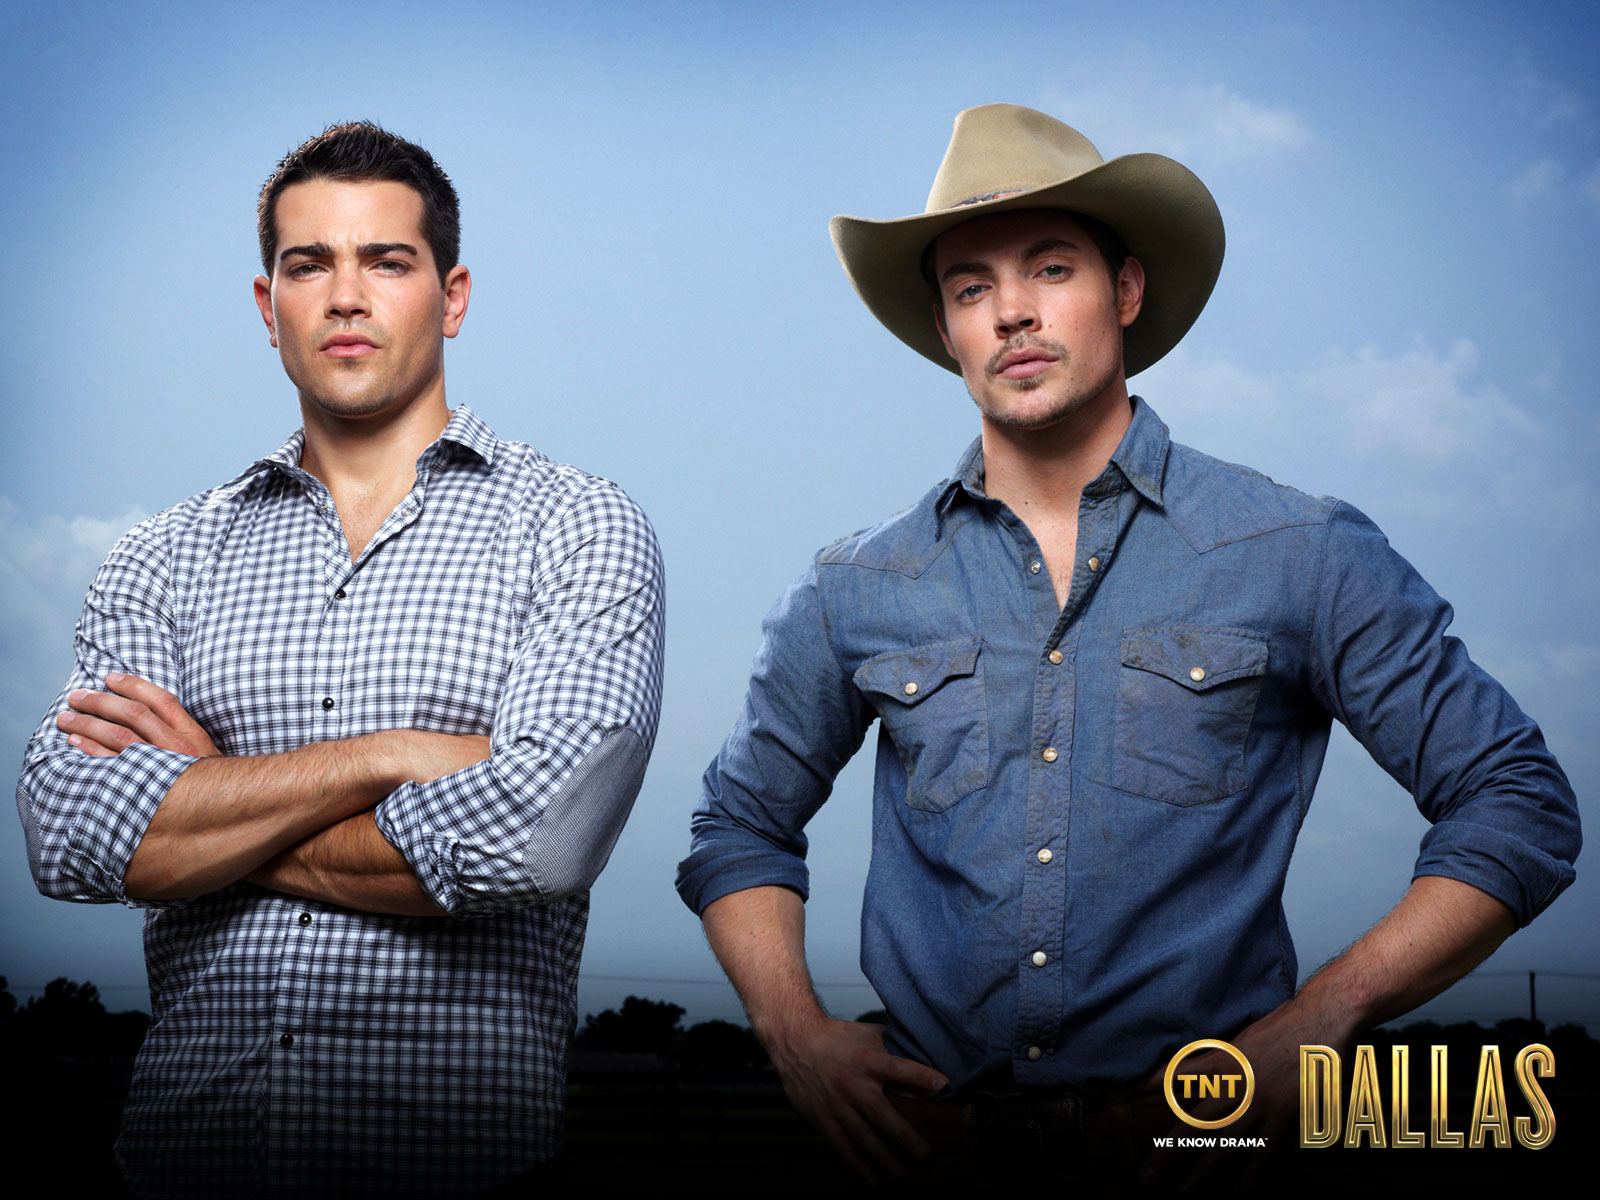 Jesse Metcalfe – Dallas begins filming in Texas – Pictures, videos, and wallpapers